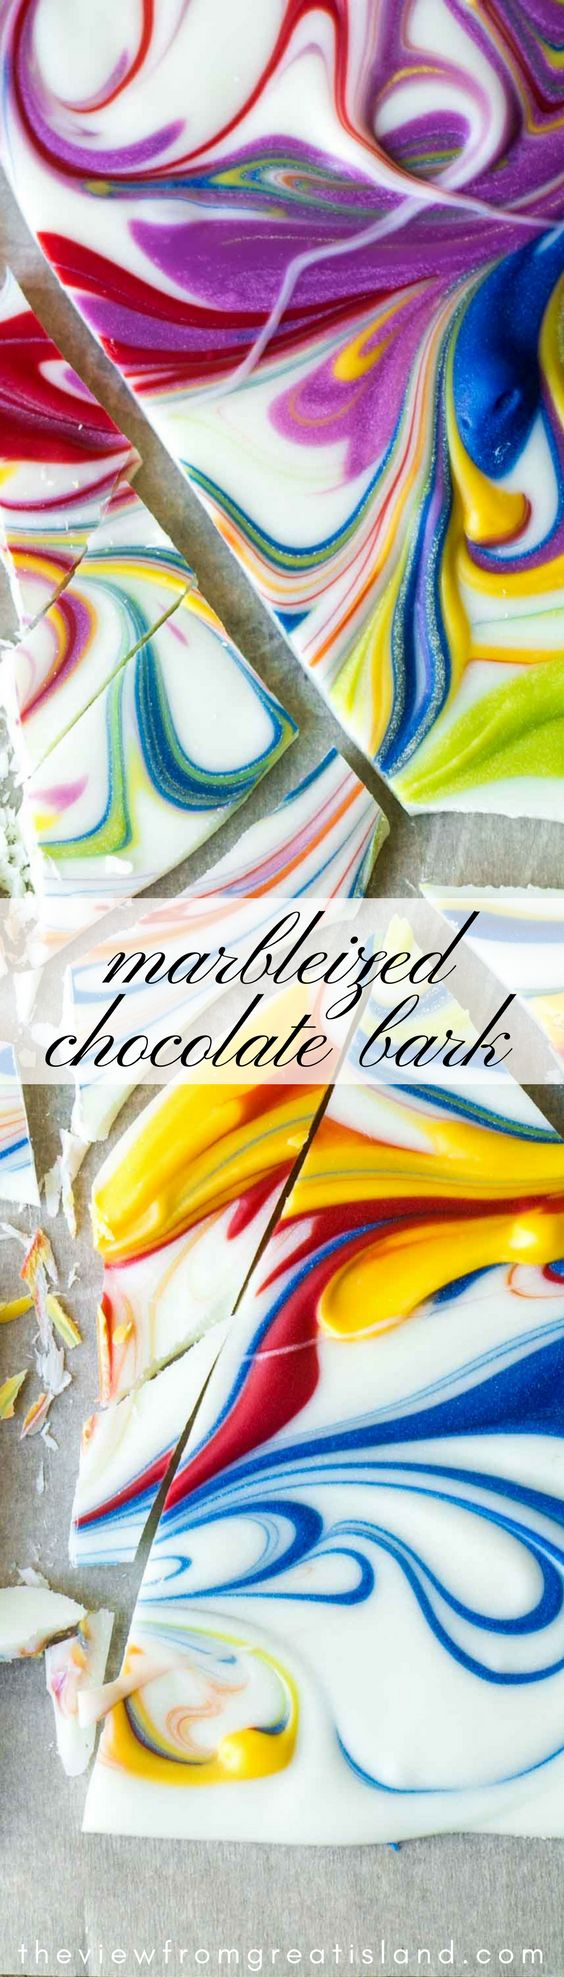 Marbleized Chocolate Bark --- this colorful homemade chocolate bark is kind of like finger painting in the kitchen, but you get something delicious to eat when it's all done! #chocolate #bark #candy #homemadecandy #chocolatebark #holidayfoodgift #dessert #candymelts #wilton #marbleizedchocolate #Christmas #Easter #whitechocolate